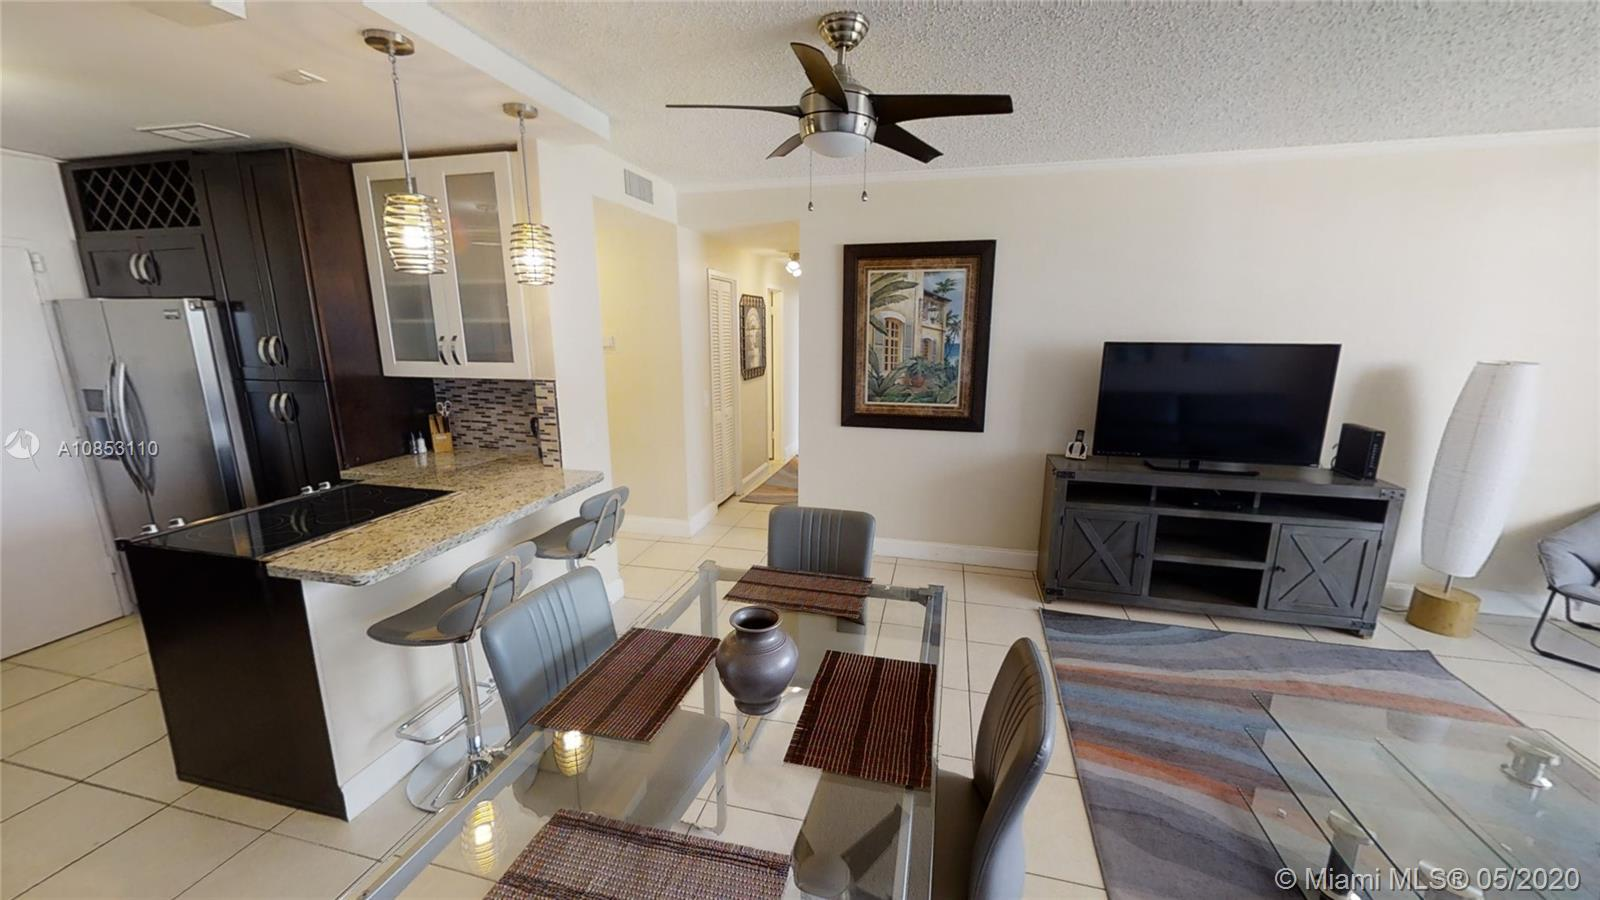 Wonderful Ocean Views, in Hollywood,  fully renovated and freshly painted unit. Rare opportunity won